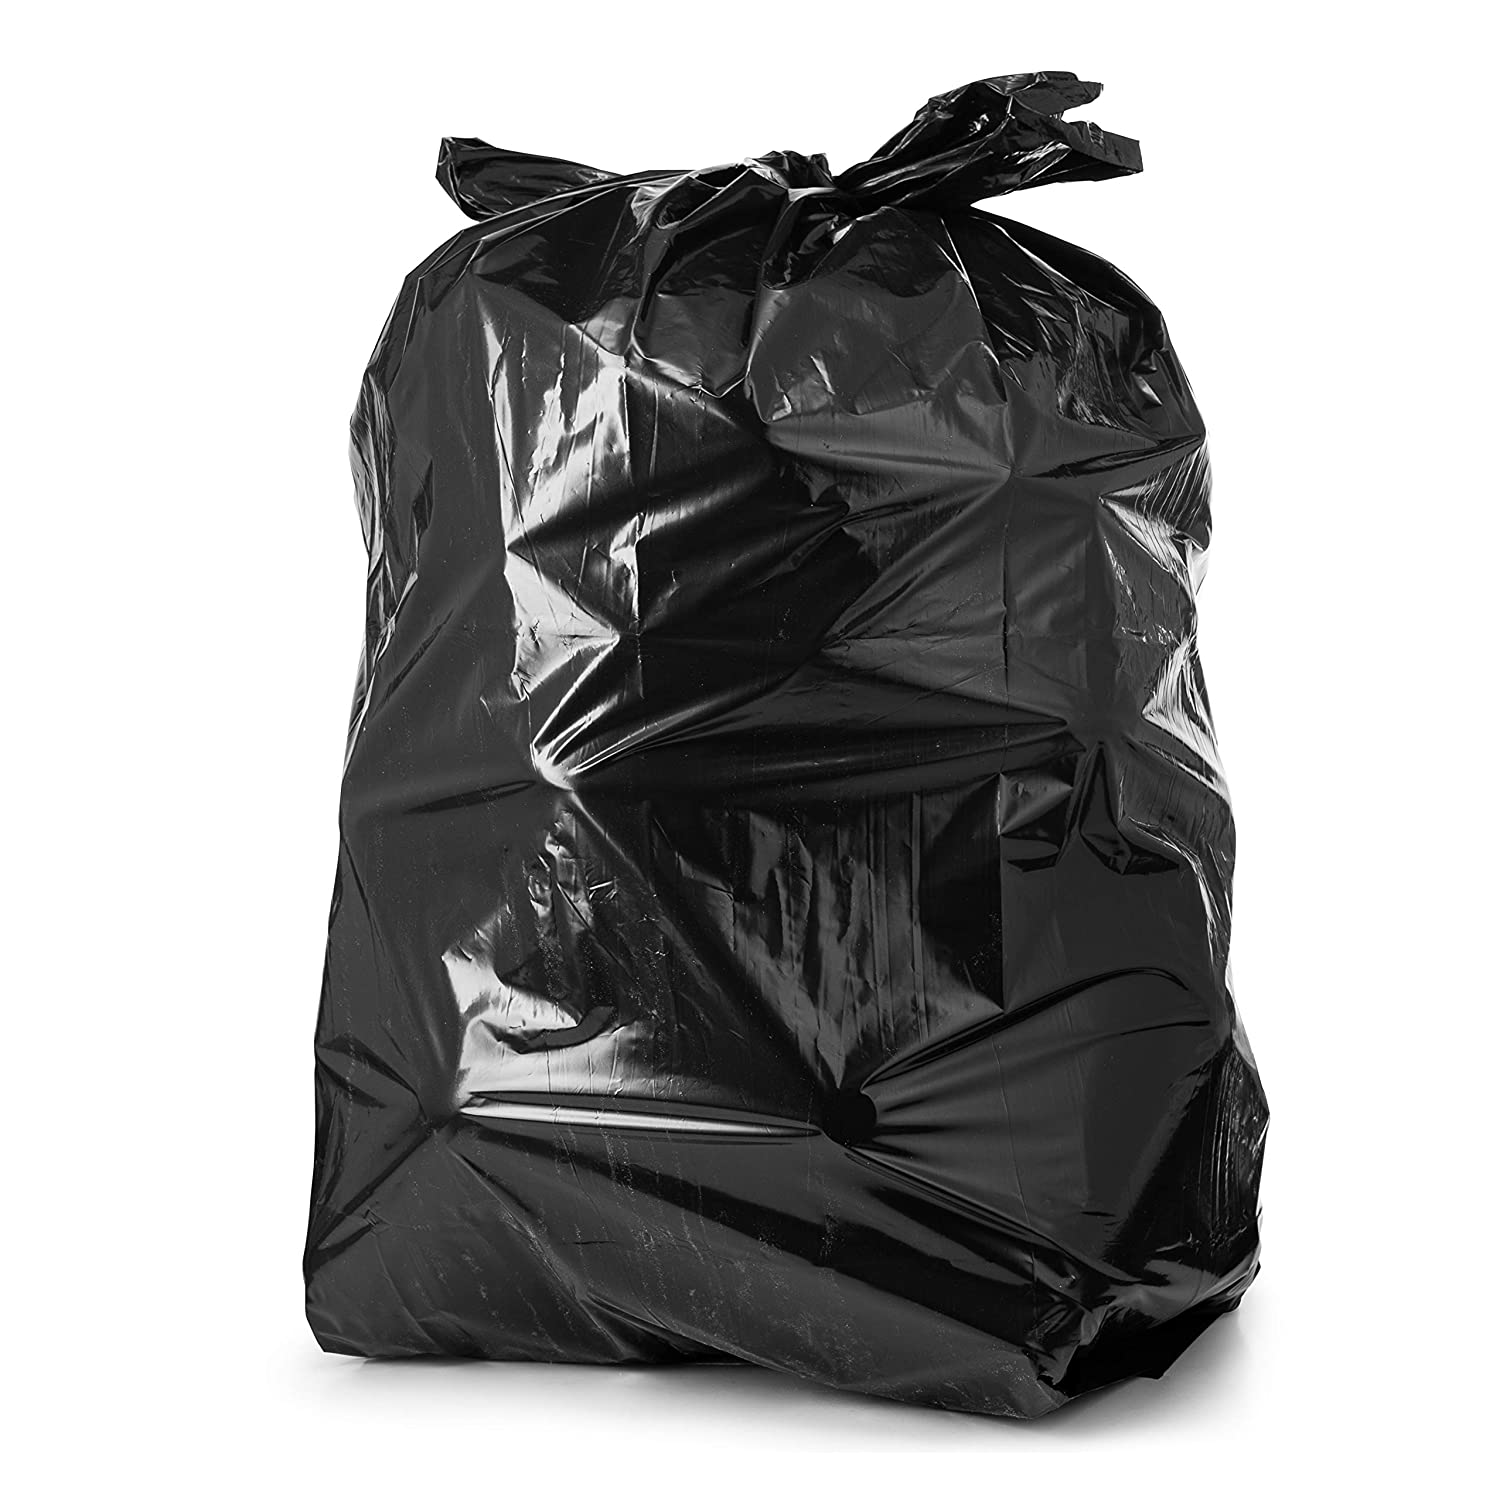 f194f5ec12a7 95 Gallon Trash Bags, Extra Large Garbage Bags, Equivalent to 2 Mil  Strength, 25/Case, 61